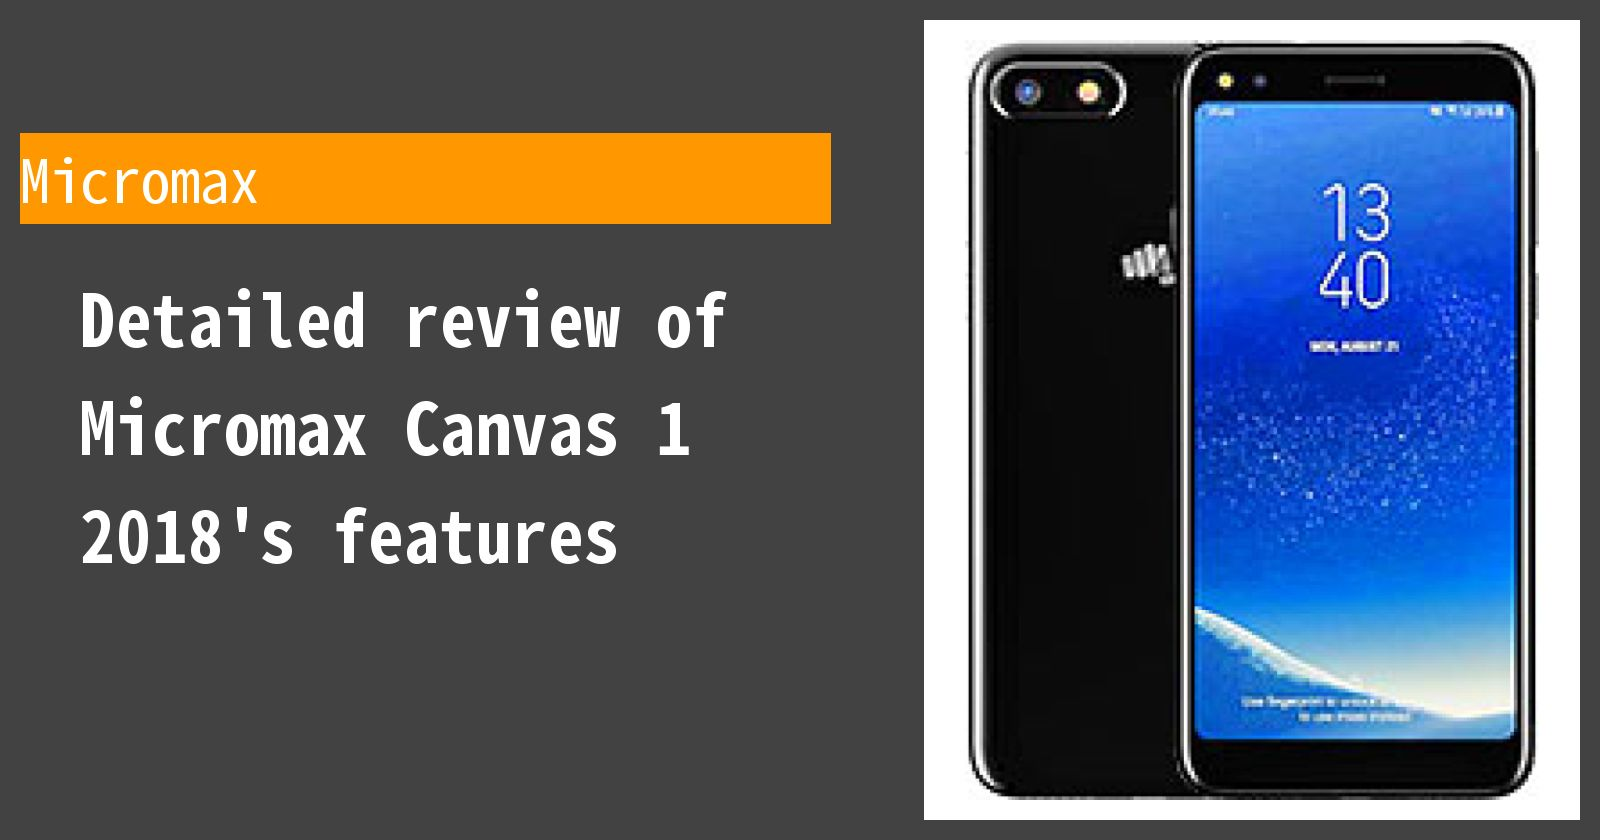 Detailed review of Micromax Canvas 1 2018's features